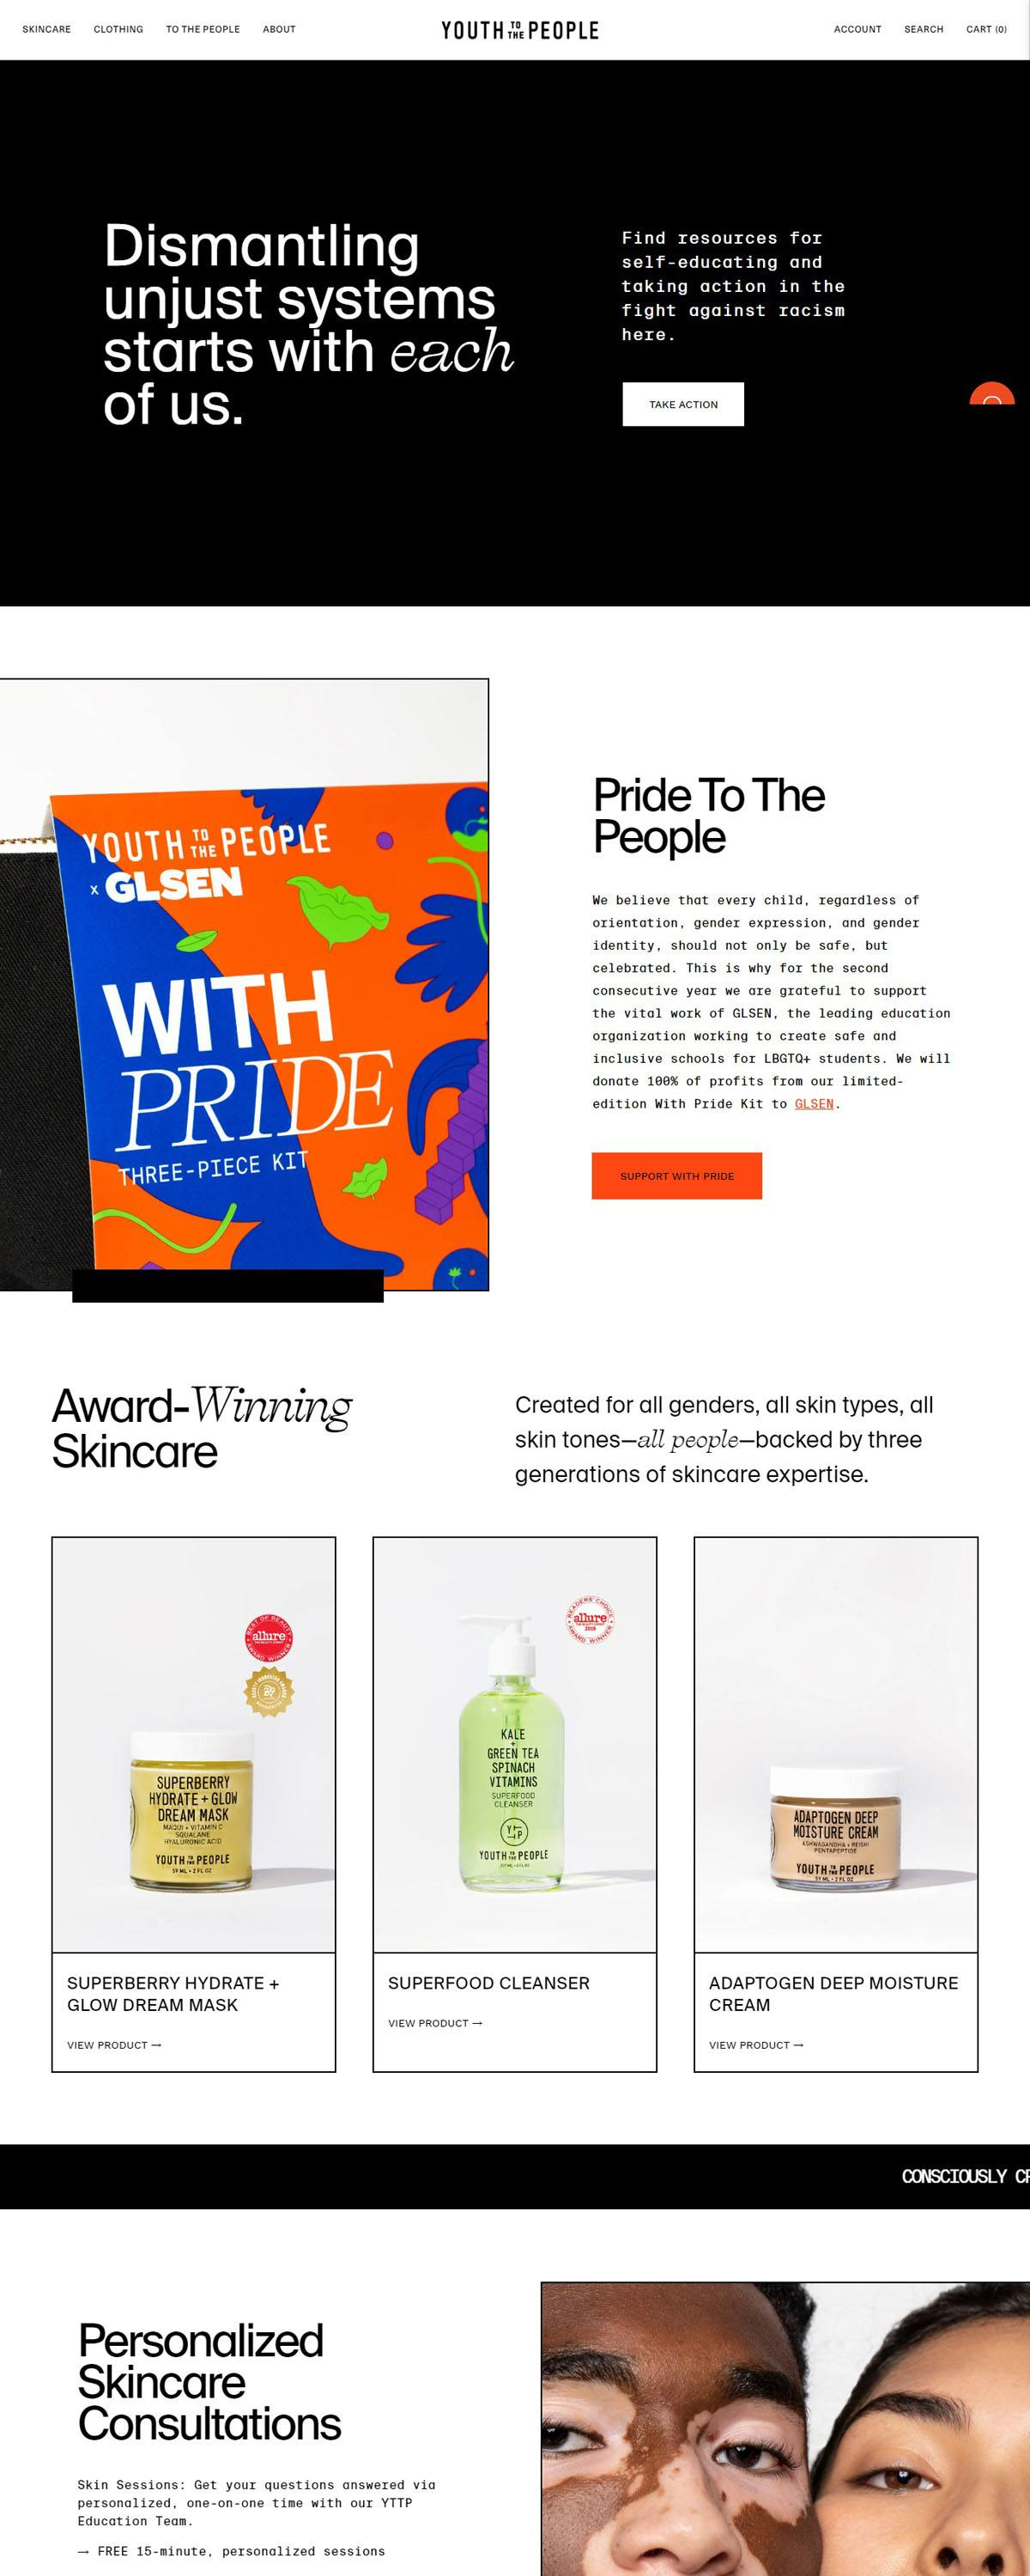 eCommerce website: Youth To The People